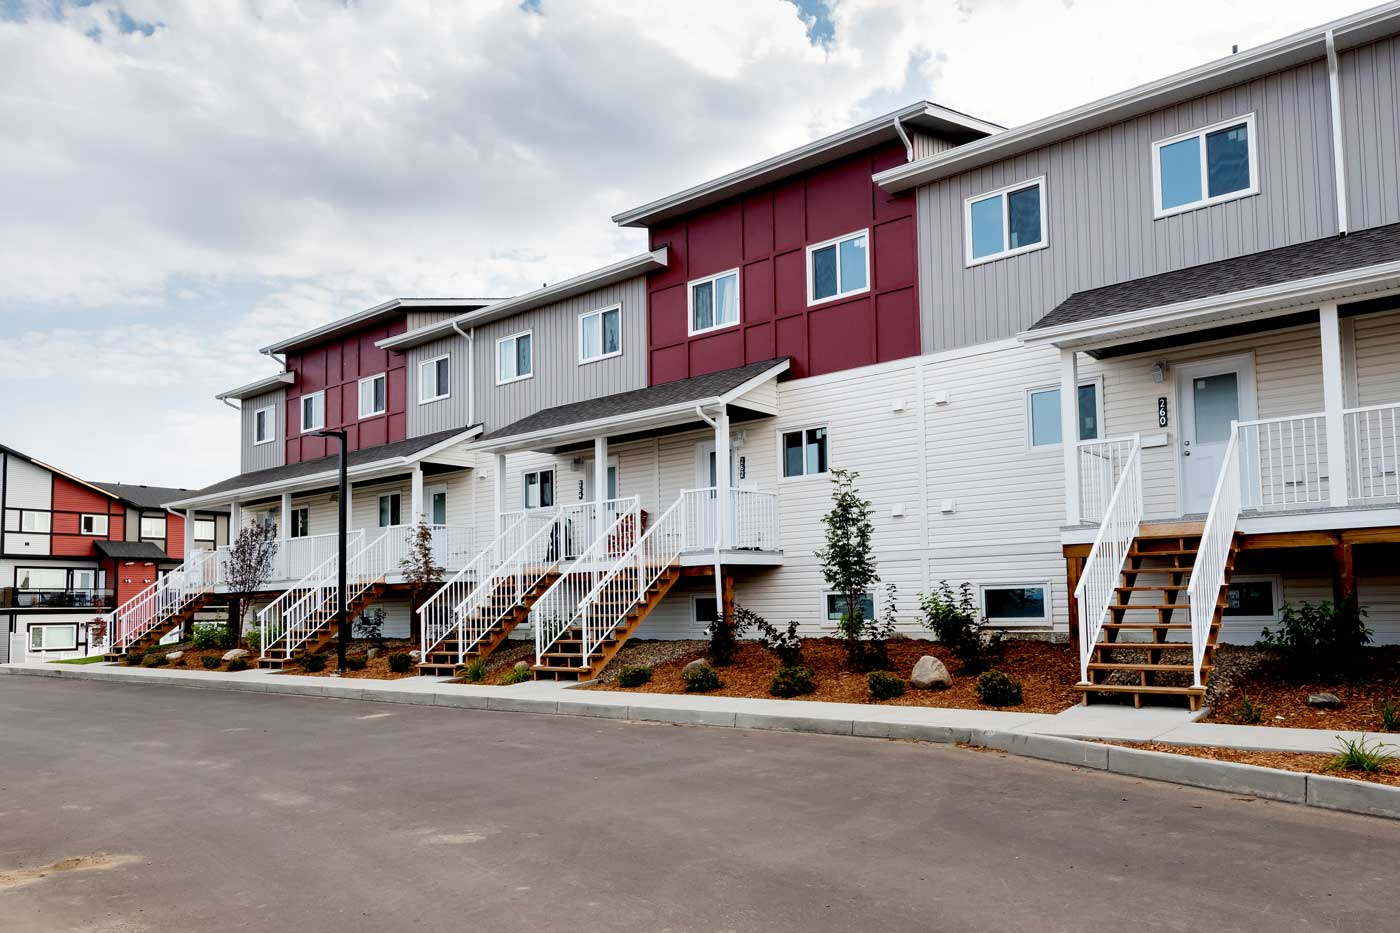 A view of the Cory Villas townhouses that shows the three-bedroom raised suites with a porch.